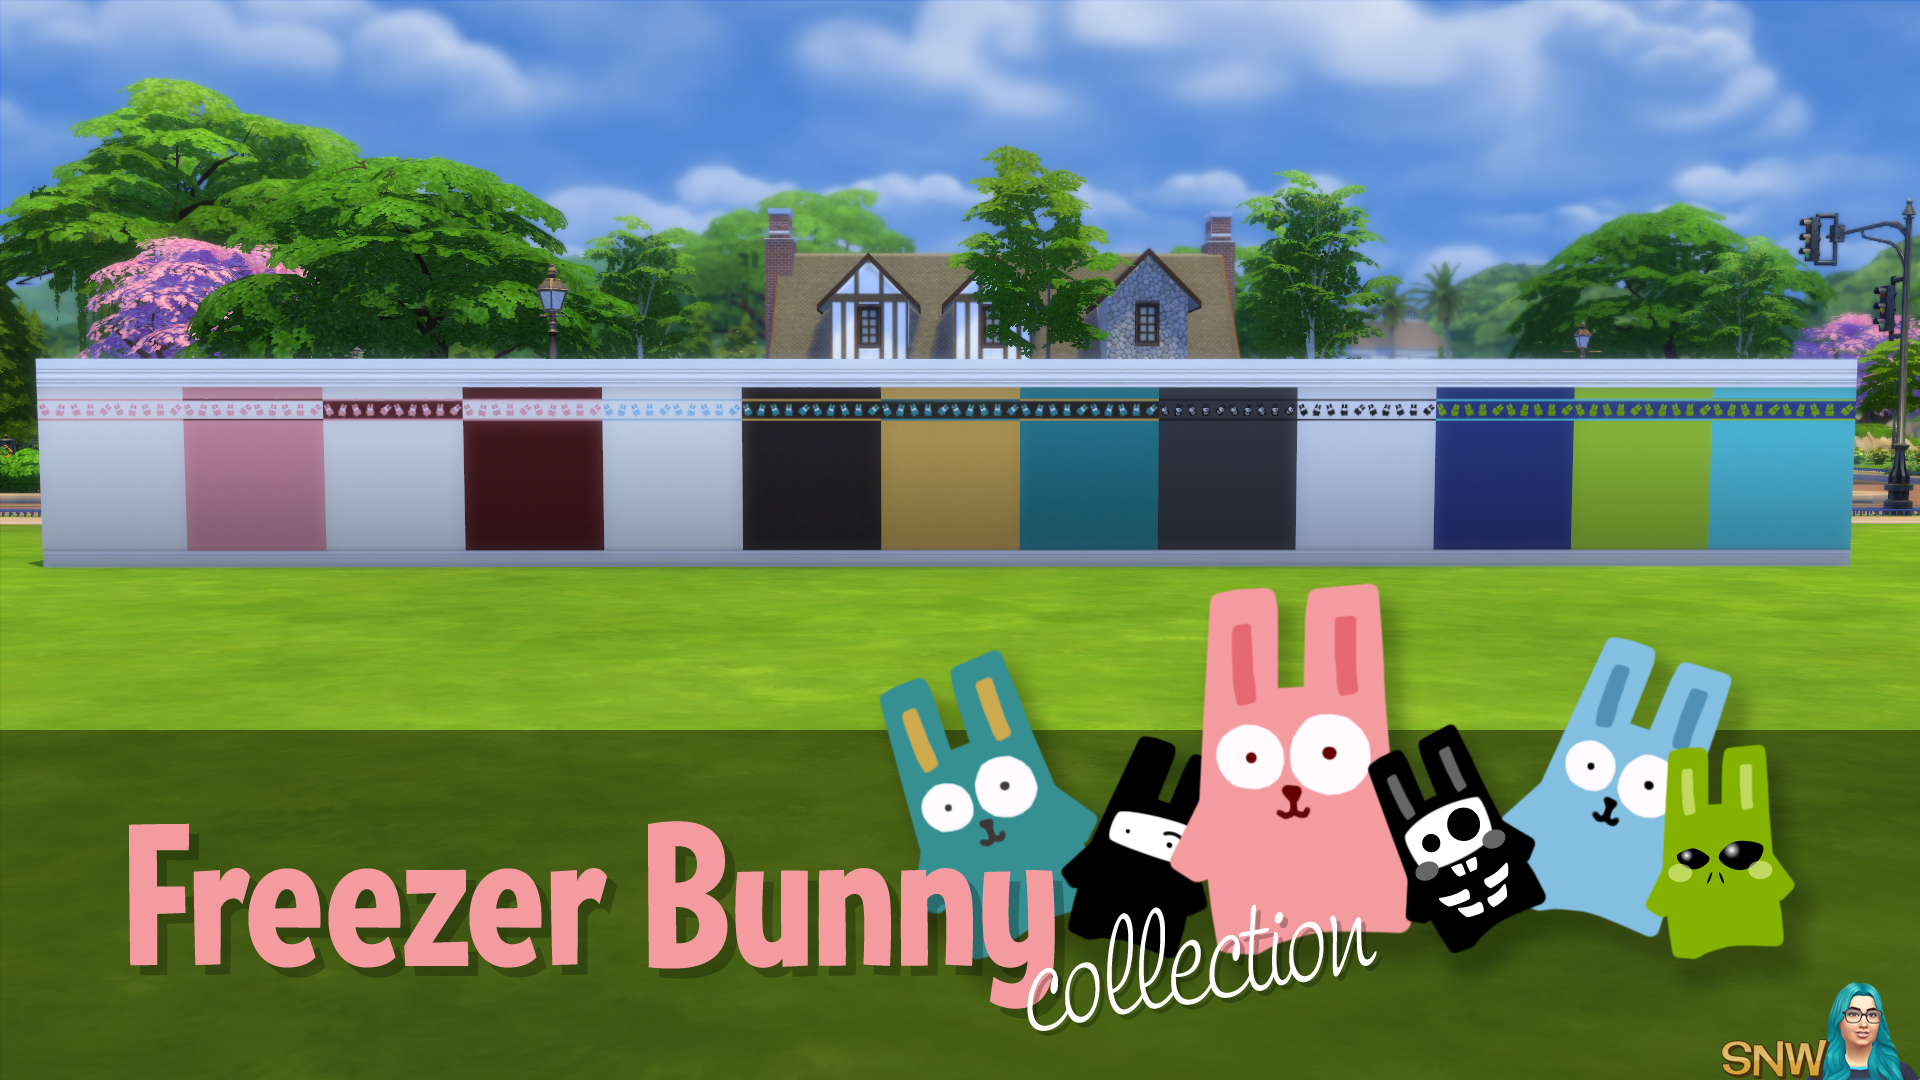 Freezer Bunny Collection: Top Border Wallpapers